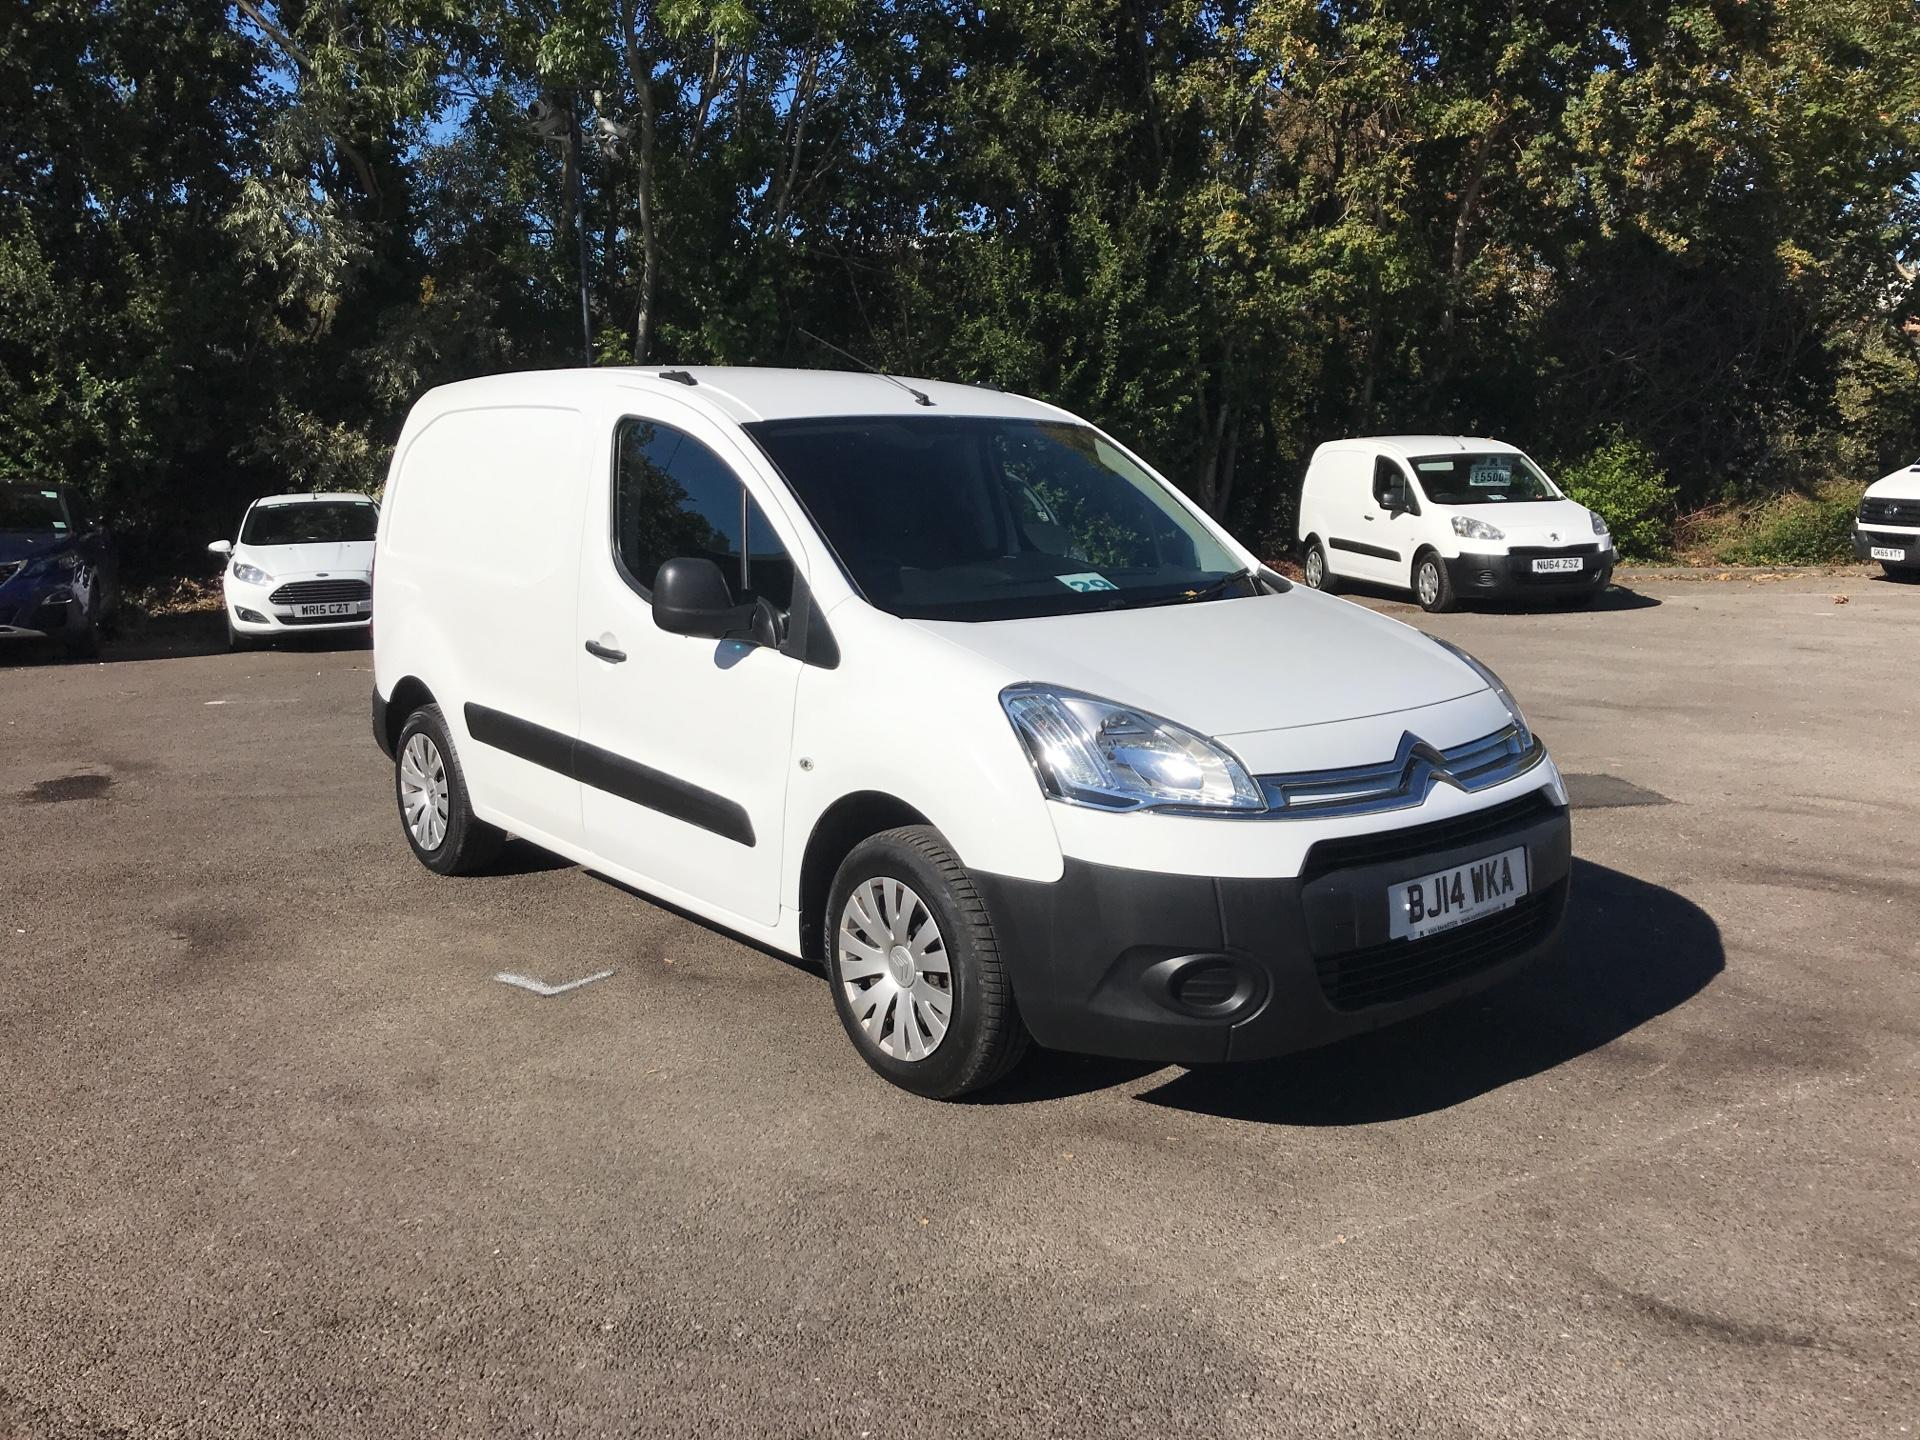 2014 Citroen Berlingo 1.6 Hdi 625Kg Enterprise 75Ps Euro 5 (BJ14WKA)